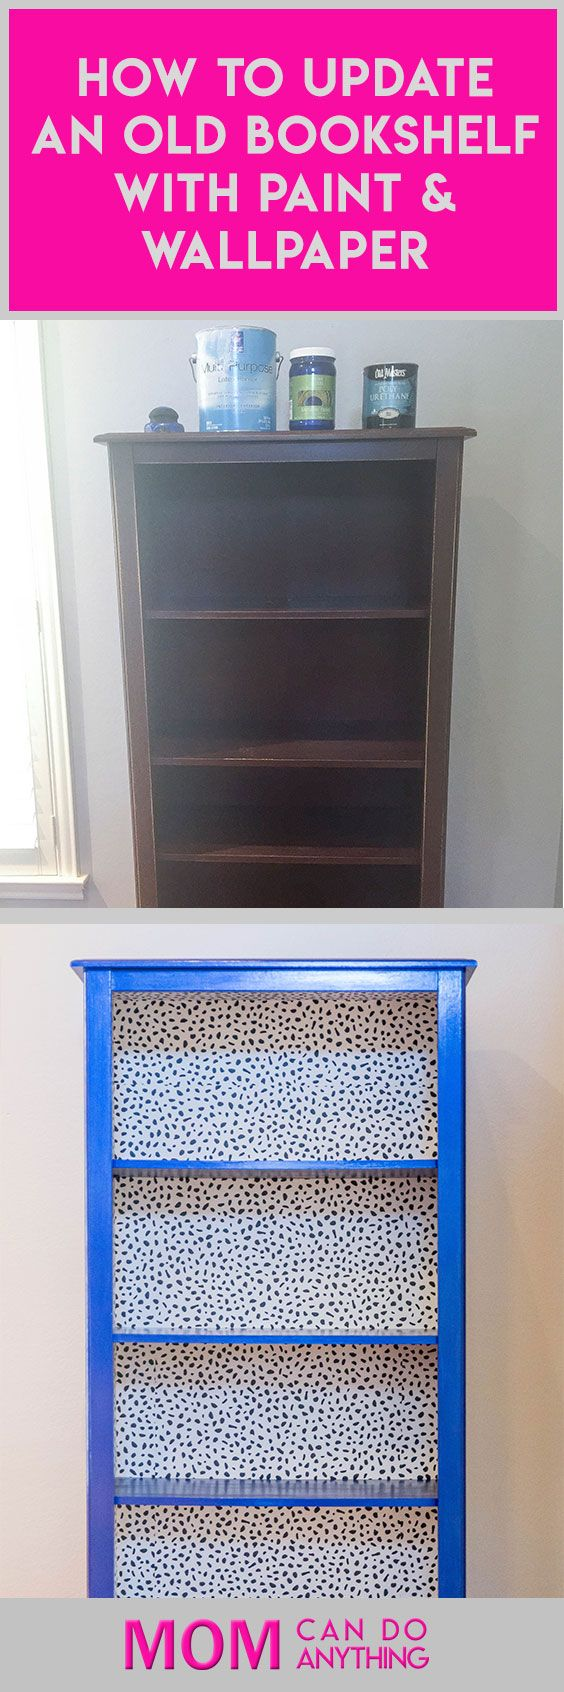 Wow! What a transformation.  One tired old bookshelf gets a new fabulously modern update with metallic paint and peel & stick wallpaper.